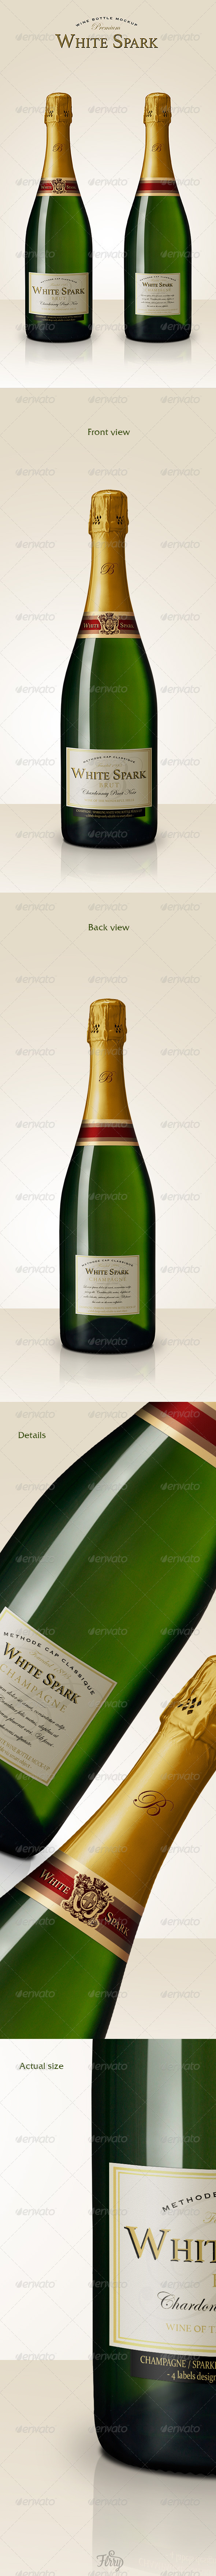 GraphicRiver Premium Champagne Bottle Mockup 7233862